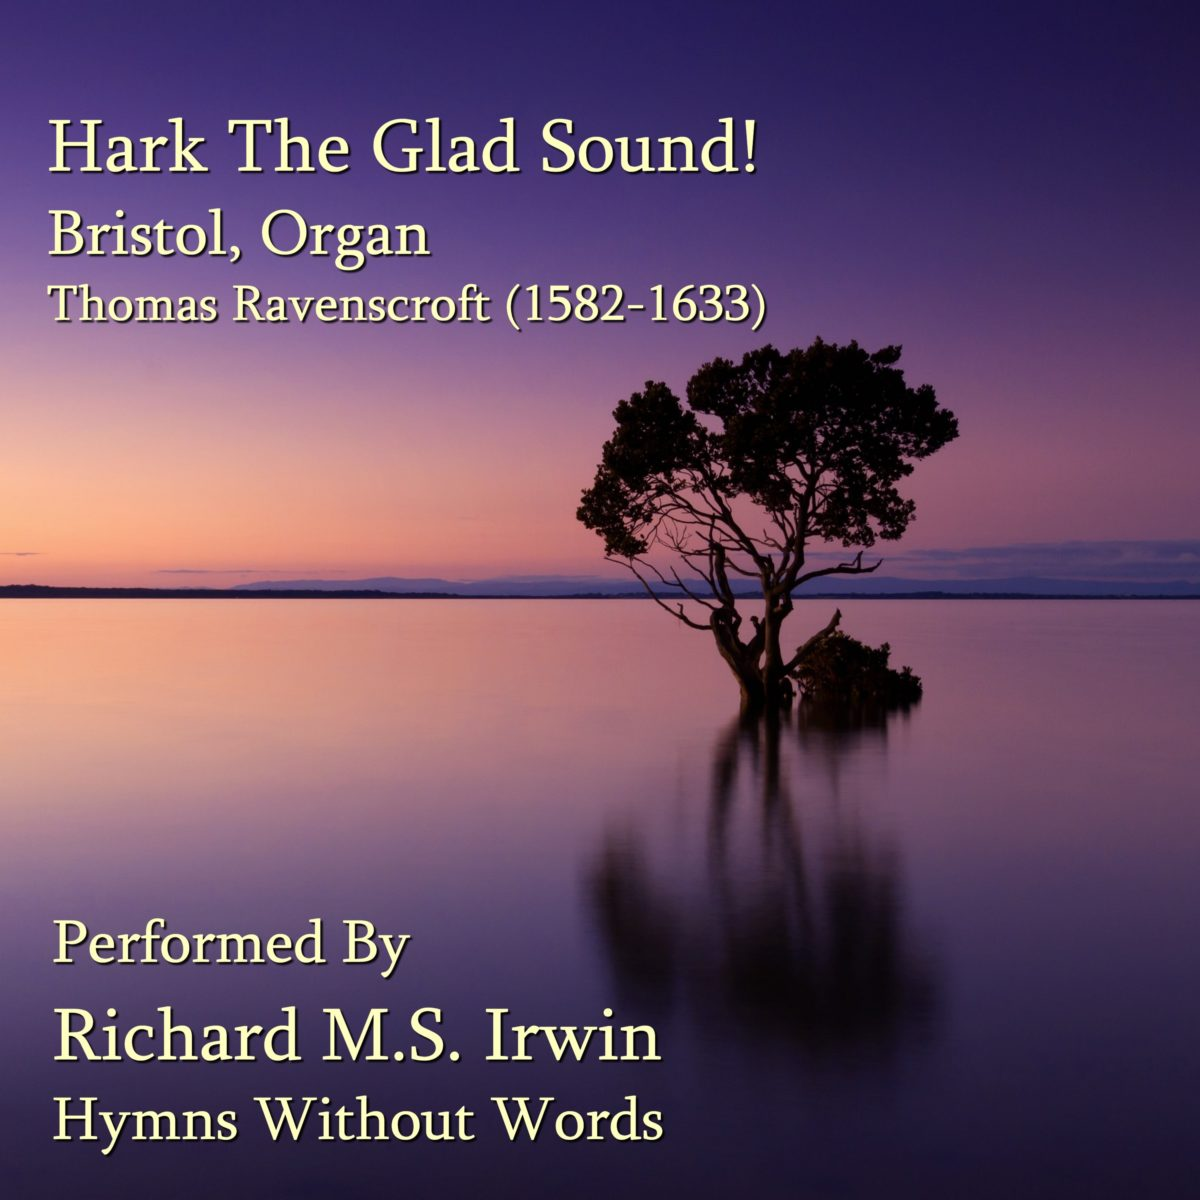 Hark The Glad Sound! (Bristol – 4 Verses) – Organ